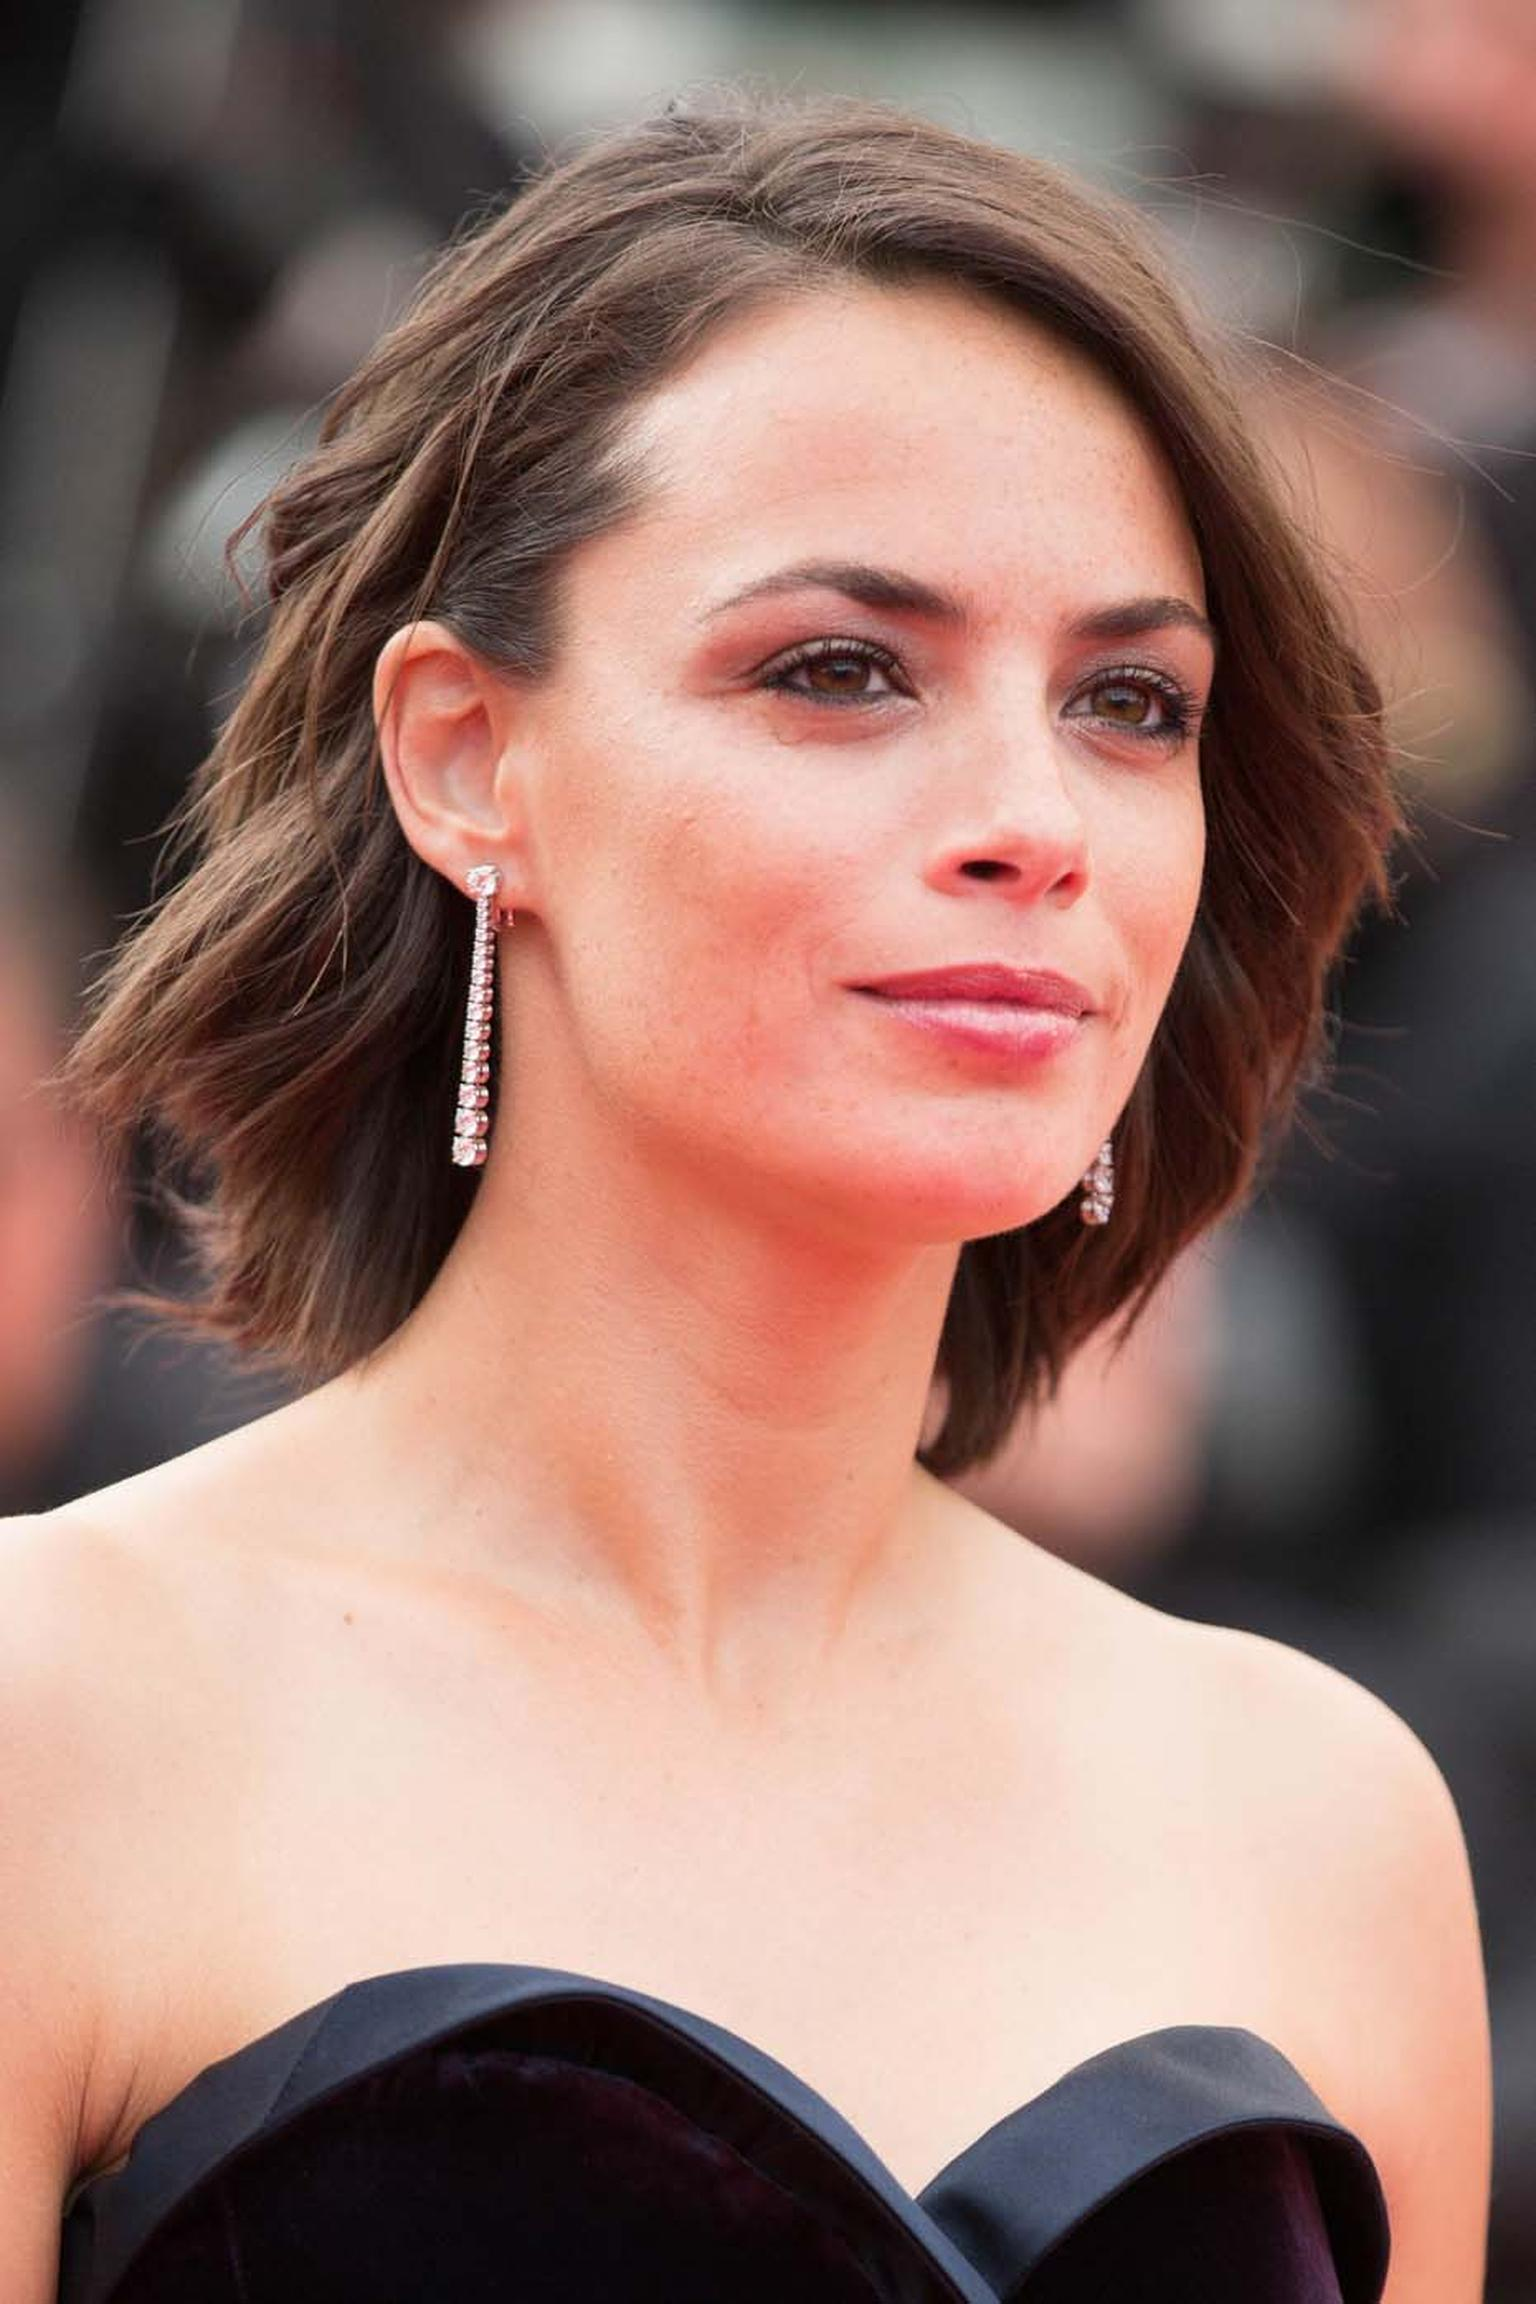 Berenice Bejo in Chopard diamond drop earrings.